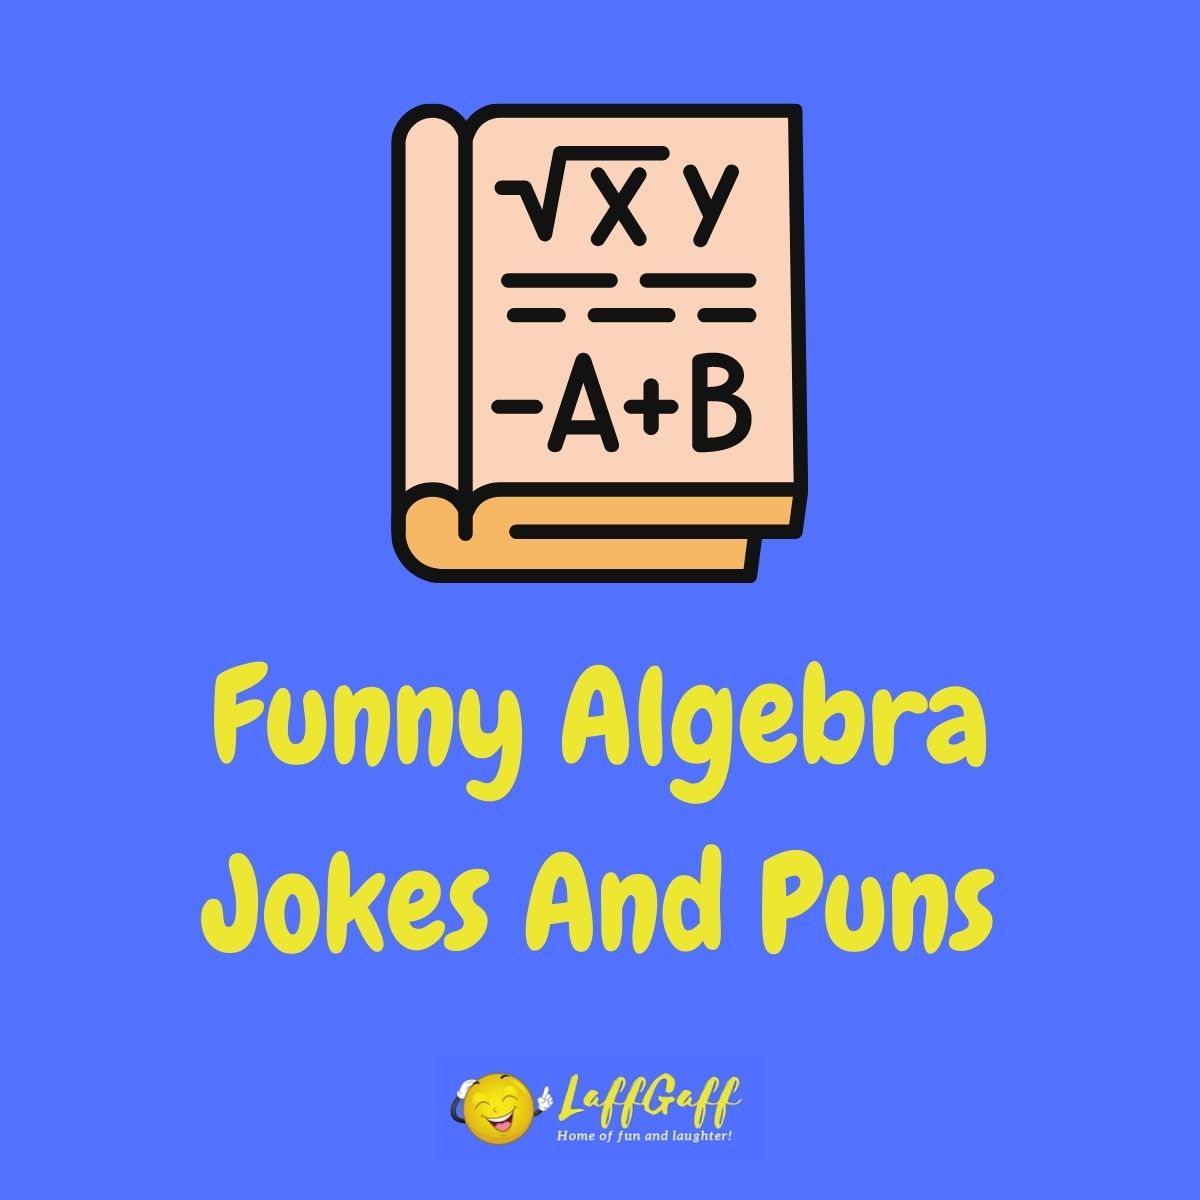 Featured image for a page of funny algebra jokes and puns.